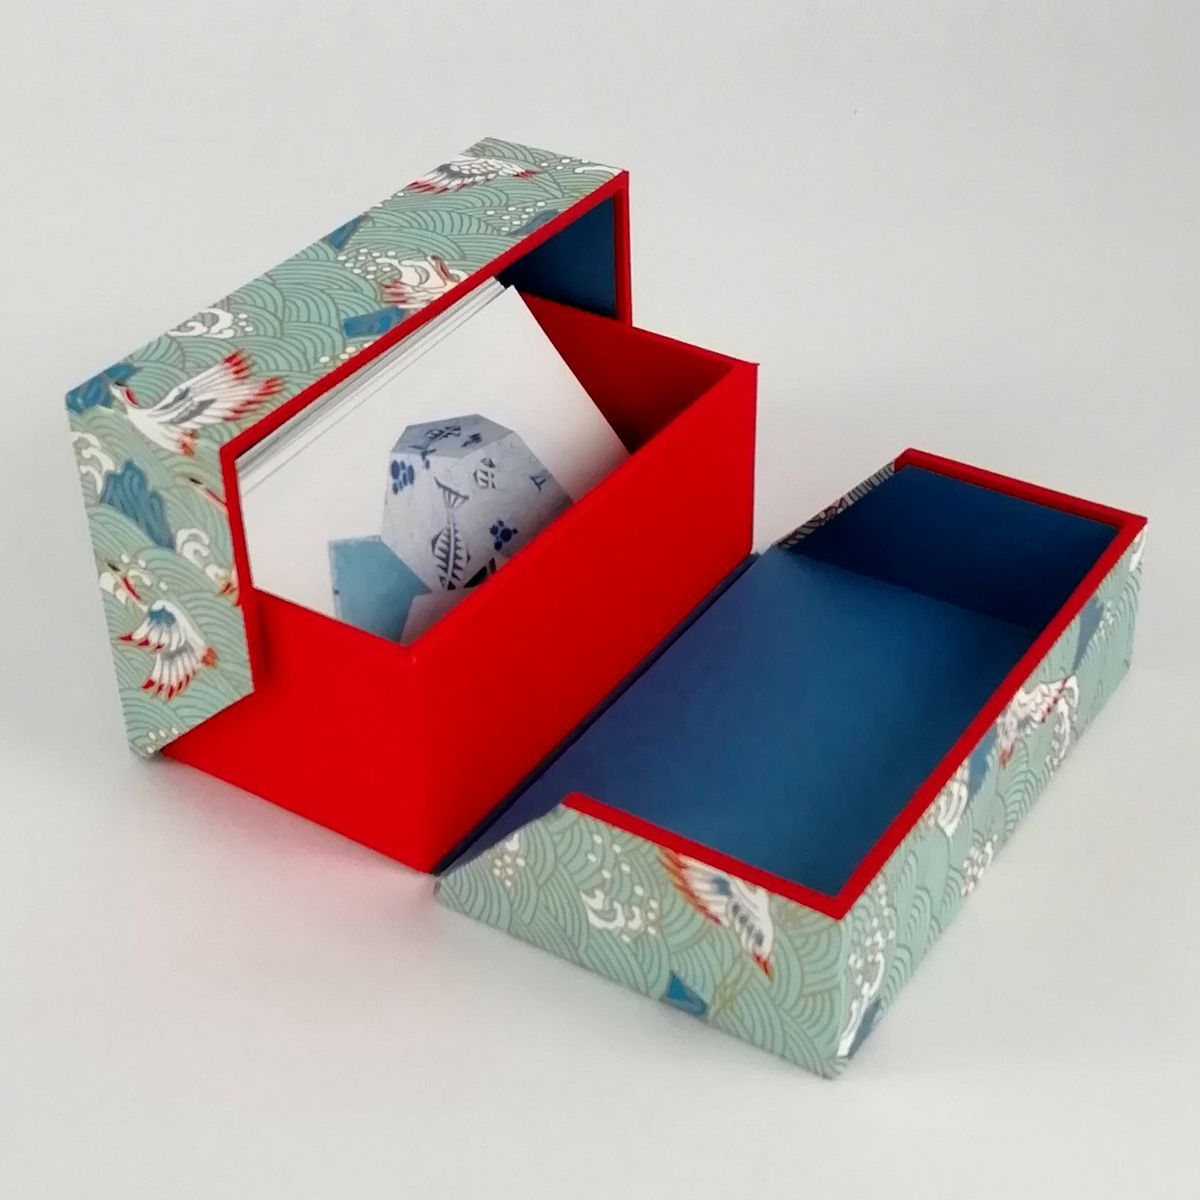 2020-05-02_Business card box, cranes light blue-red (3)